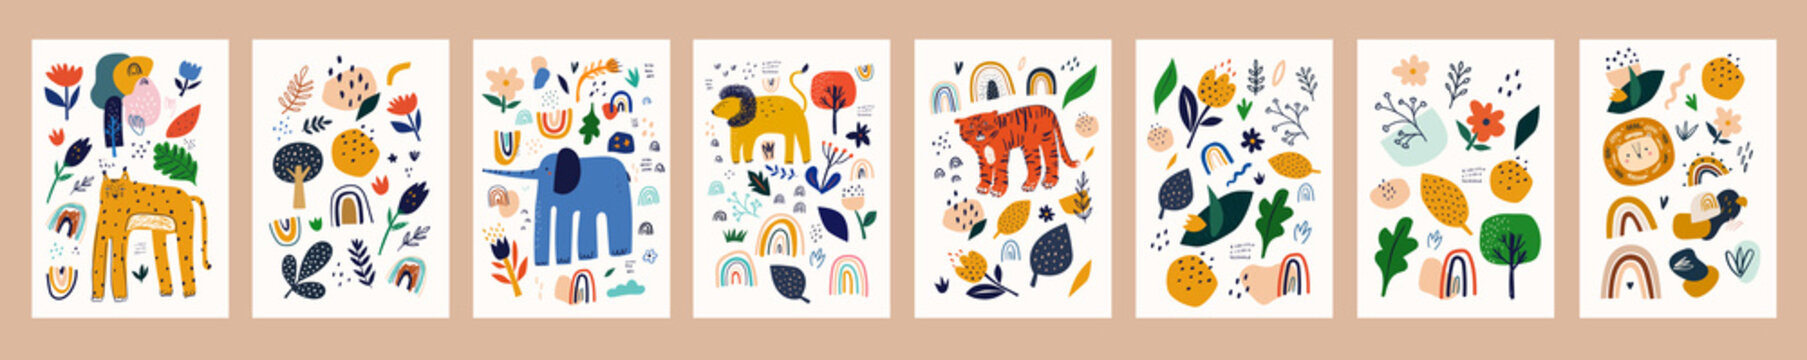 Spring floral posters with abstract shapes, flowers and animals. Baby animals posters. Fabric pattern. Vector illustration with cute animals. Nursery baby prints illustration